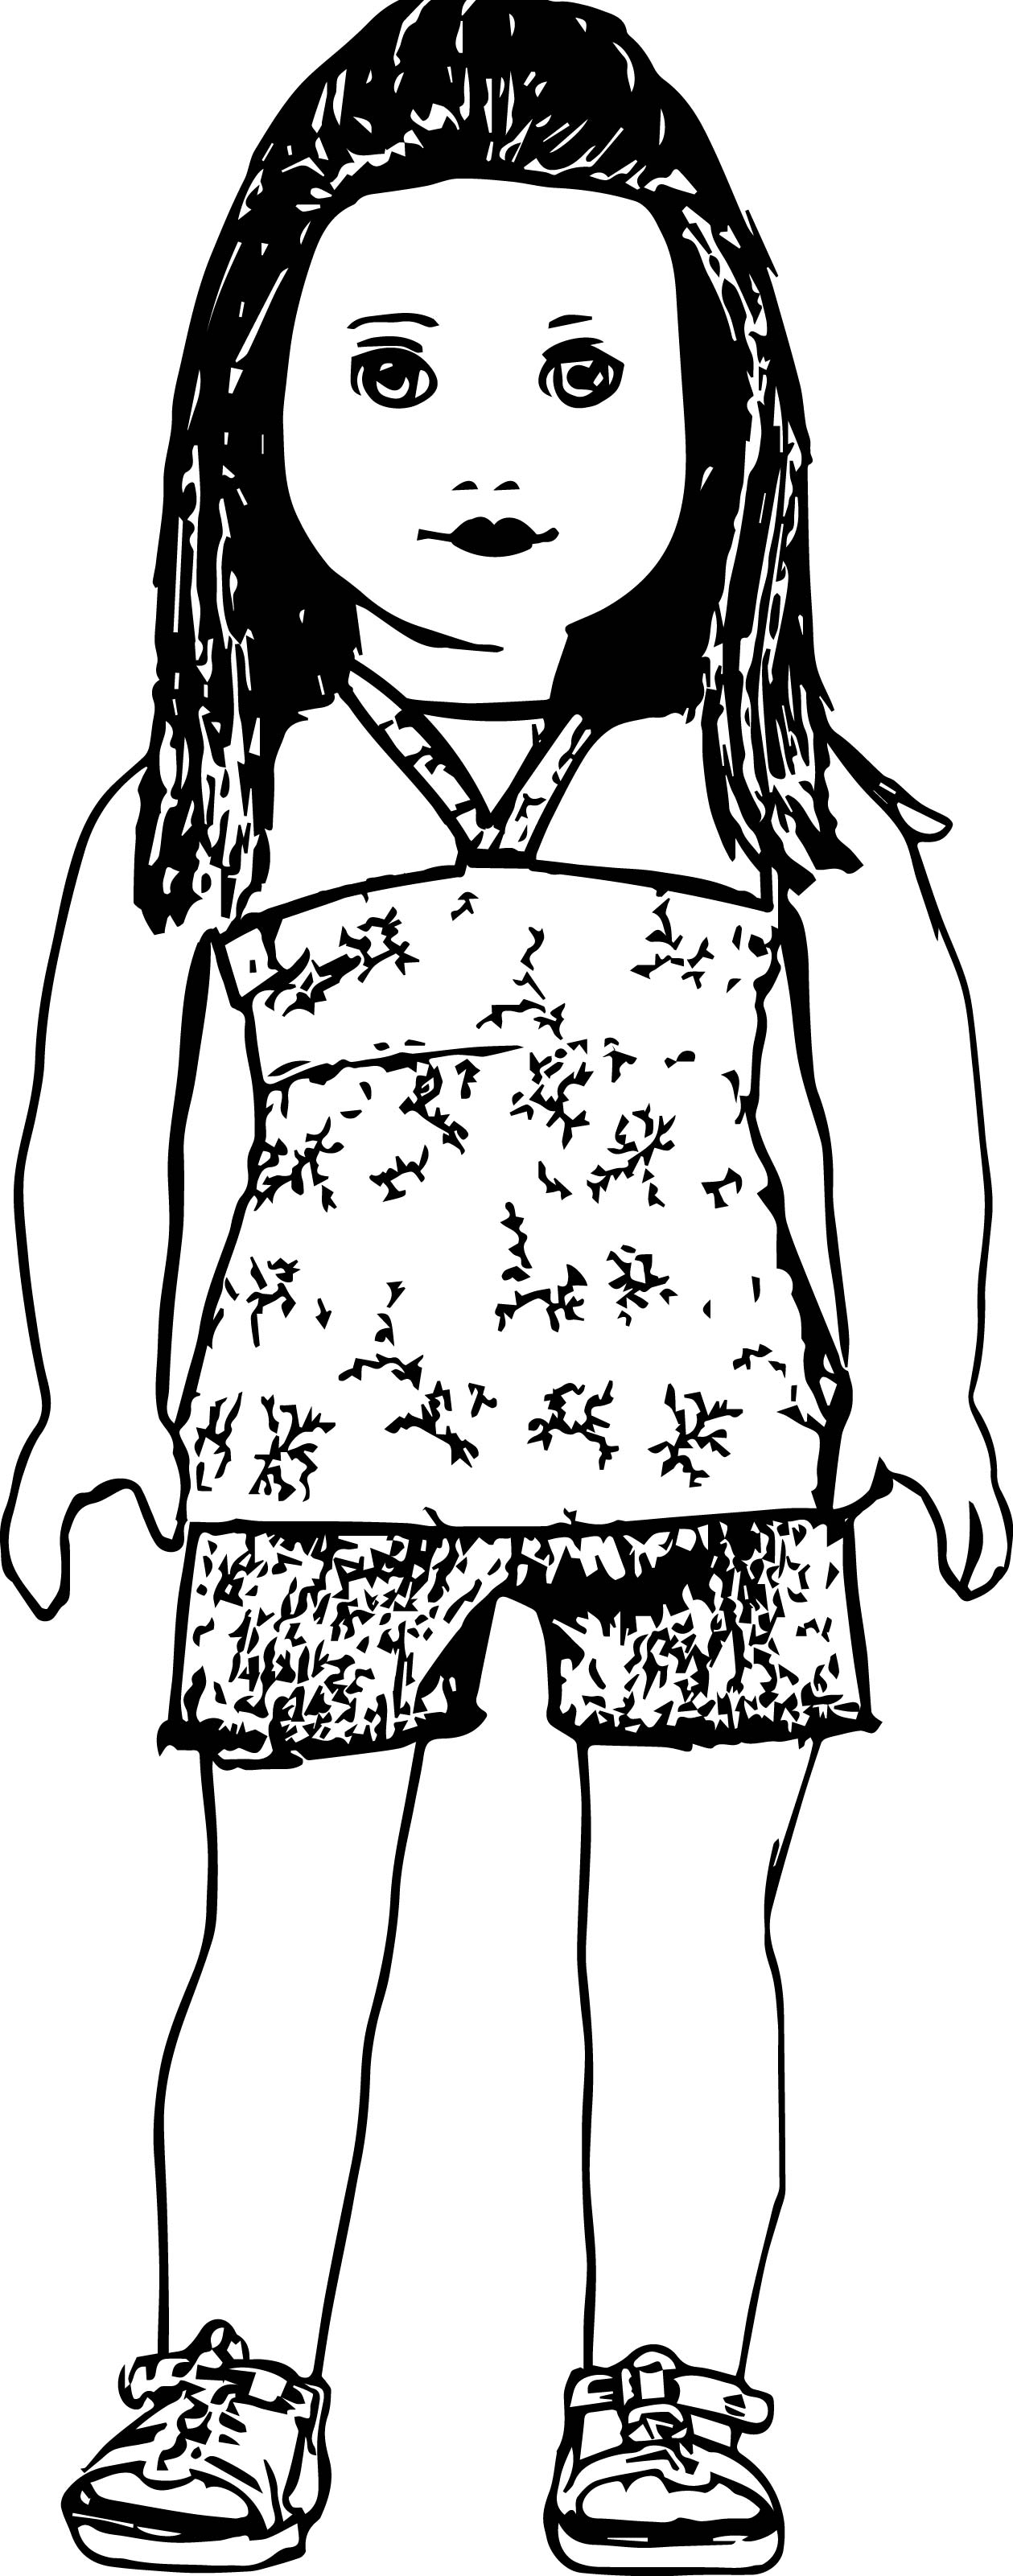 american girl doll coloring page american girl doll julie pages coloring pages american page girl doll coloring